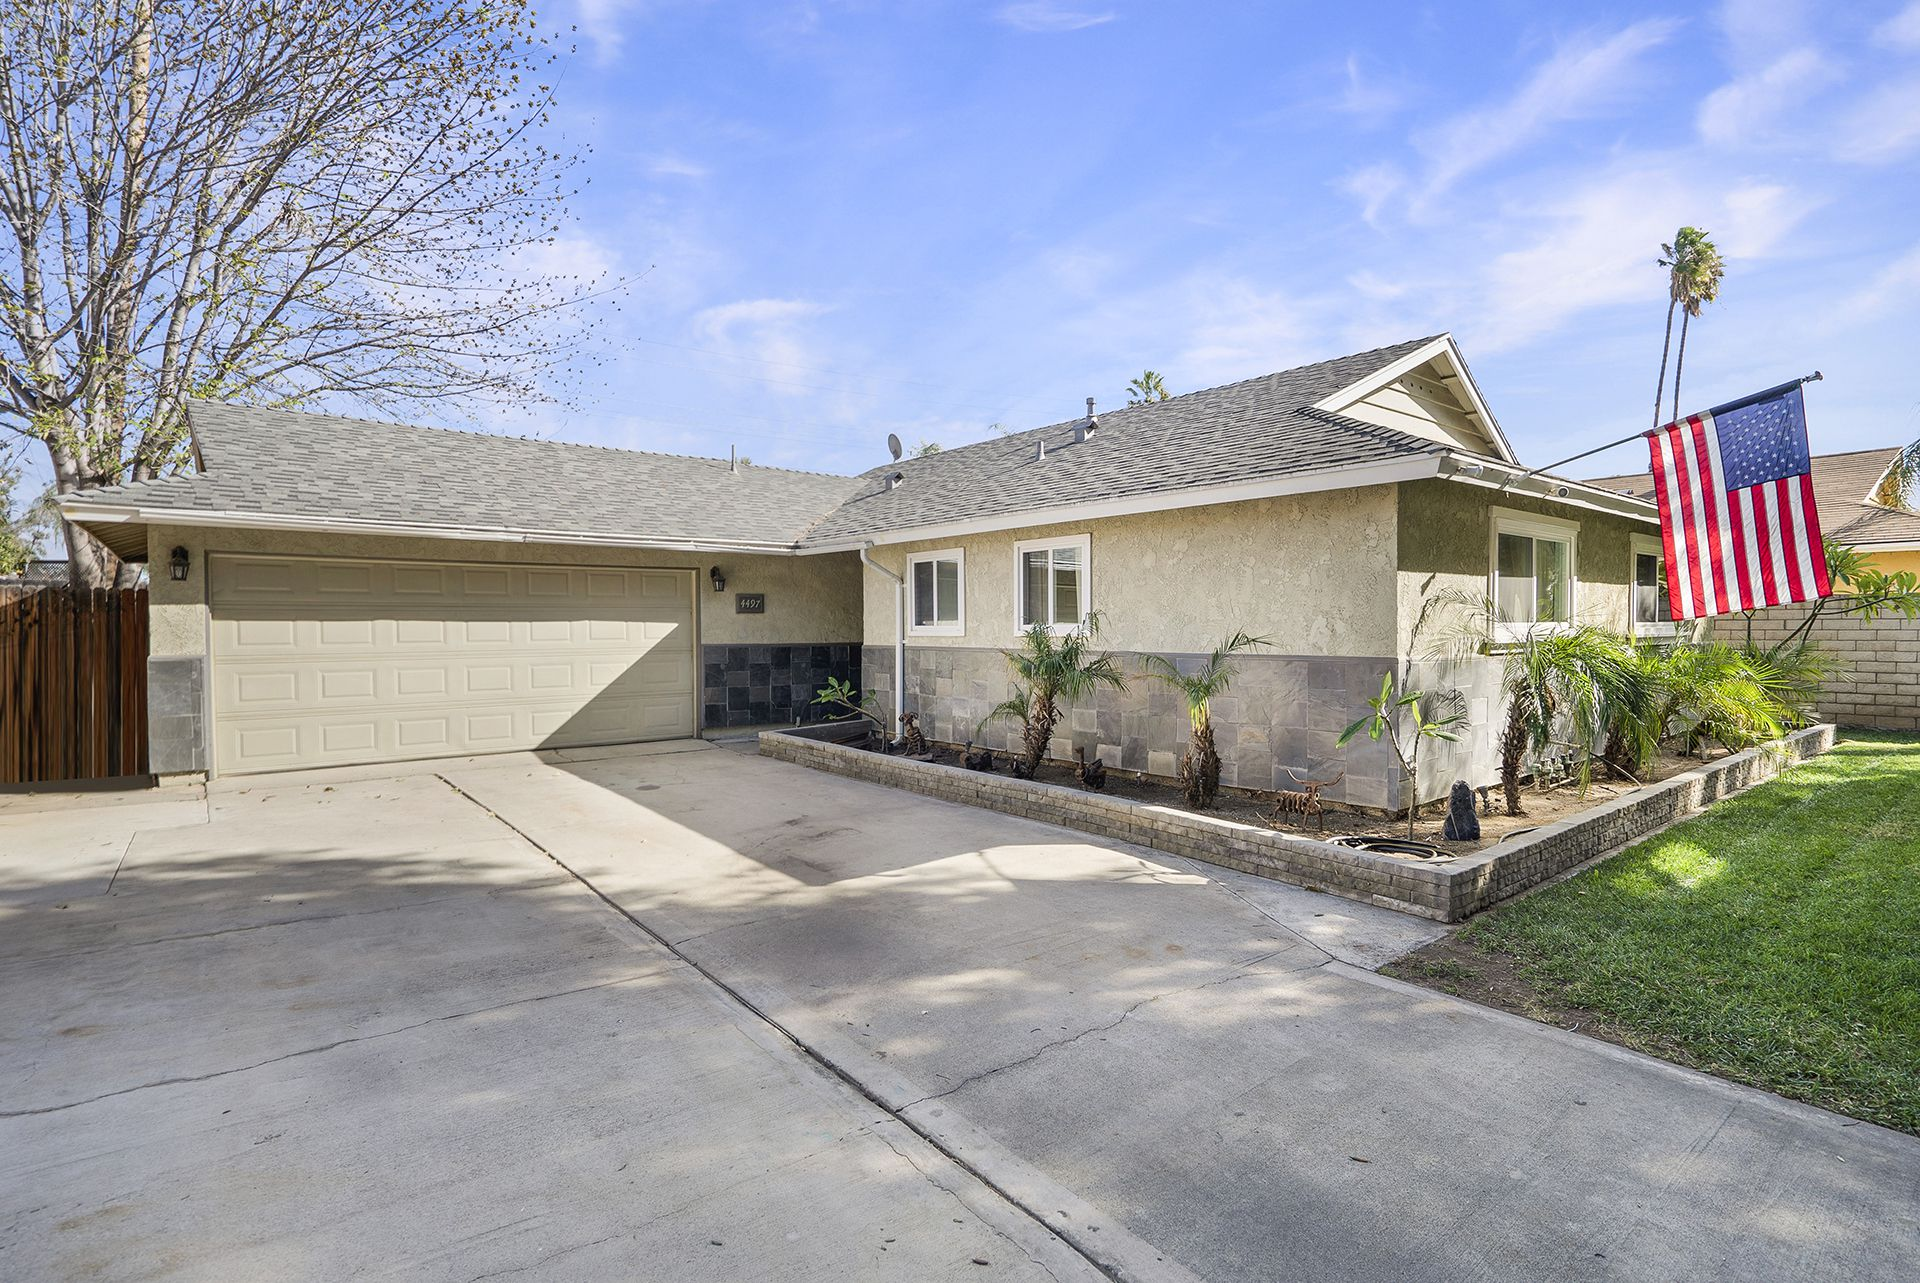 4497 Santee Place, Riverside CA 92504 listed by THE SISTER TEAM